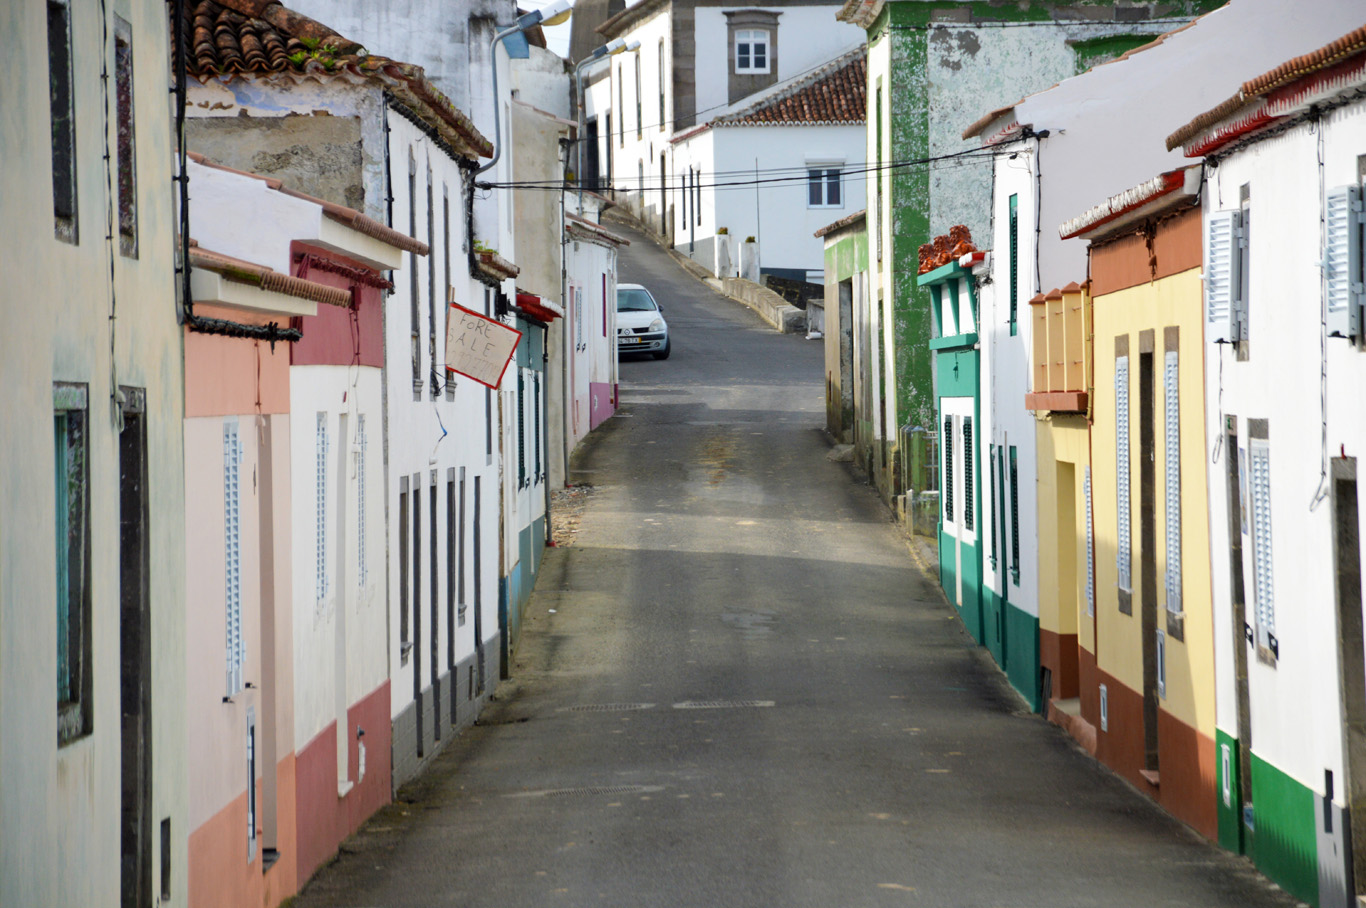 Houses in one of the villages